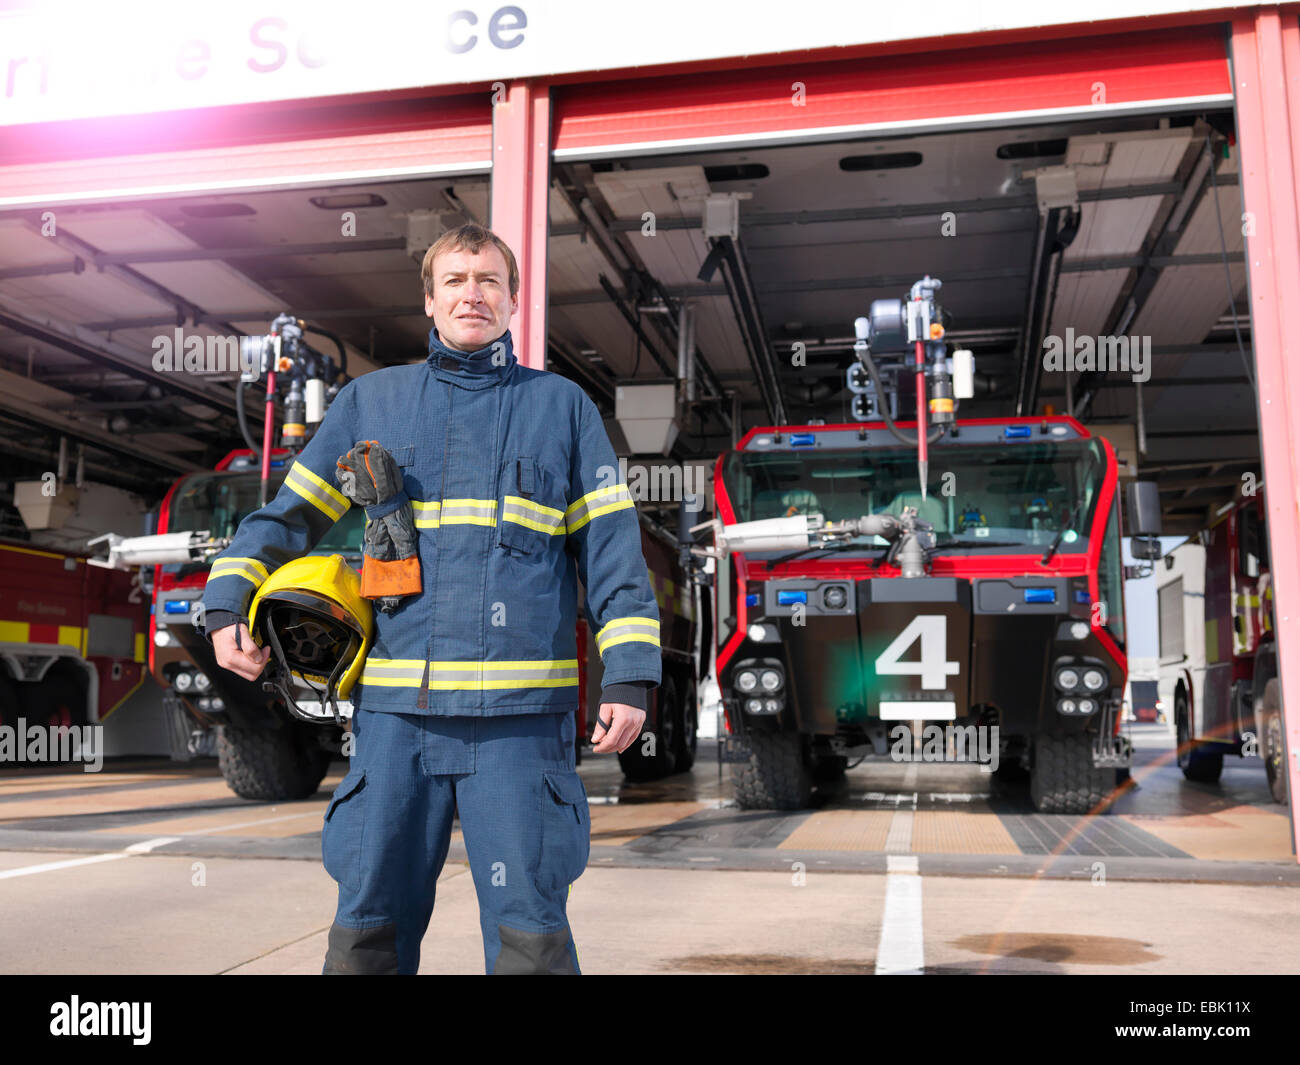 Portrait of fireman in front of fire engines in airport fire station - Stock Image